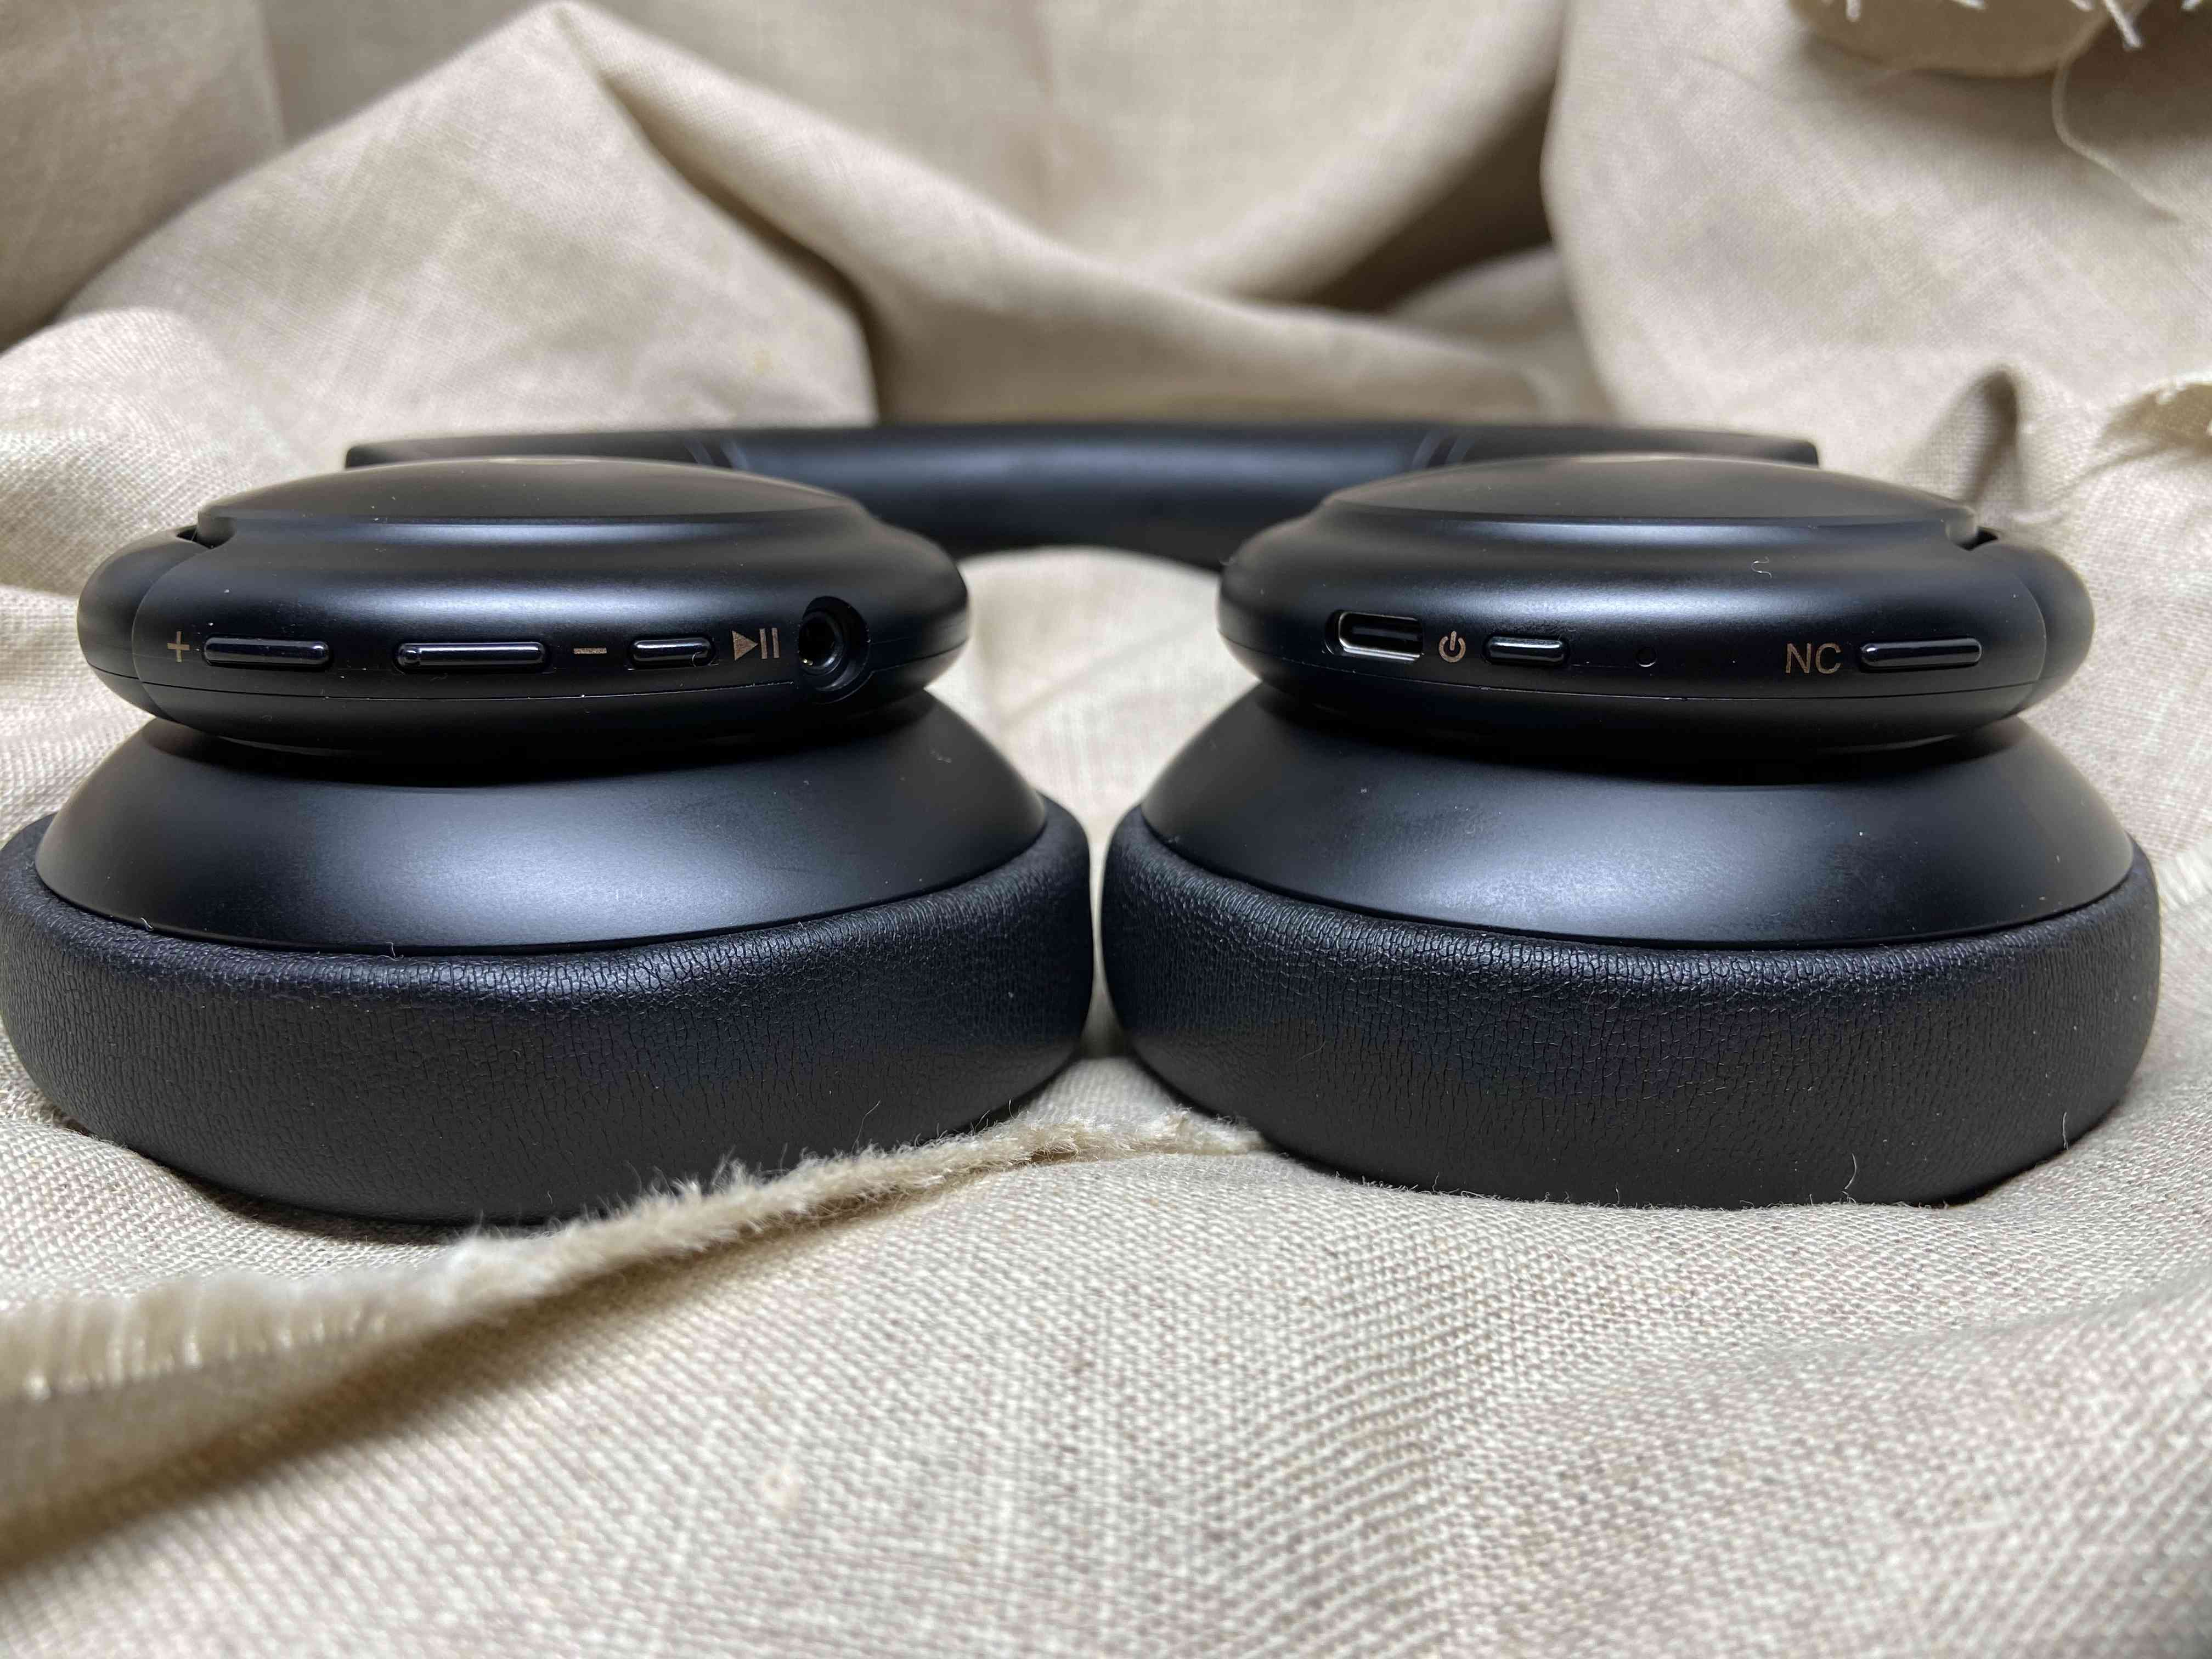 The Soundcore Life Q30 headphones laying down and showing their various buttons